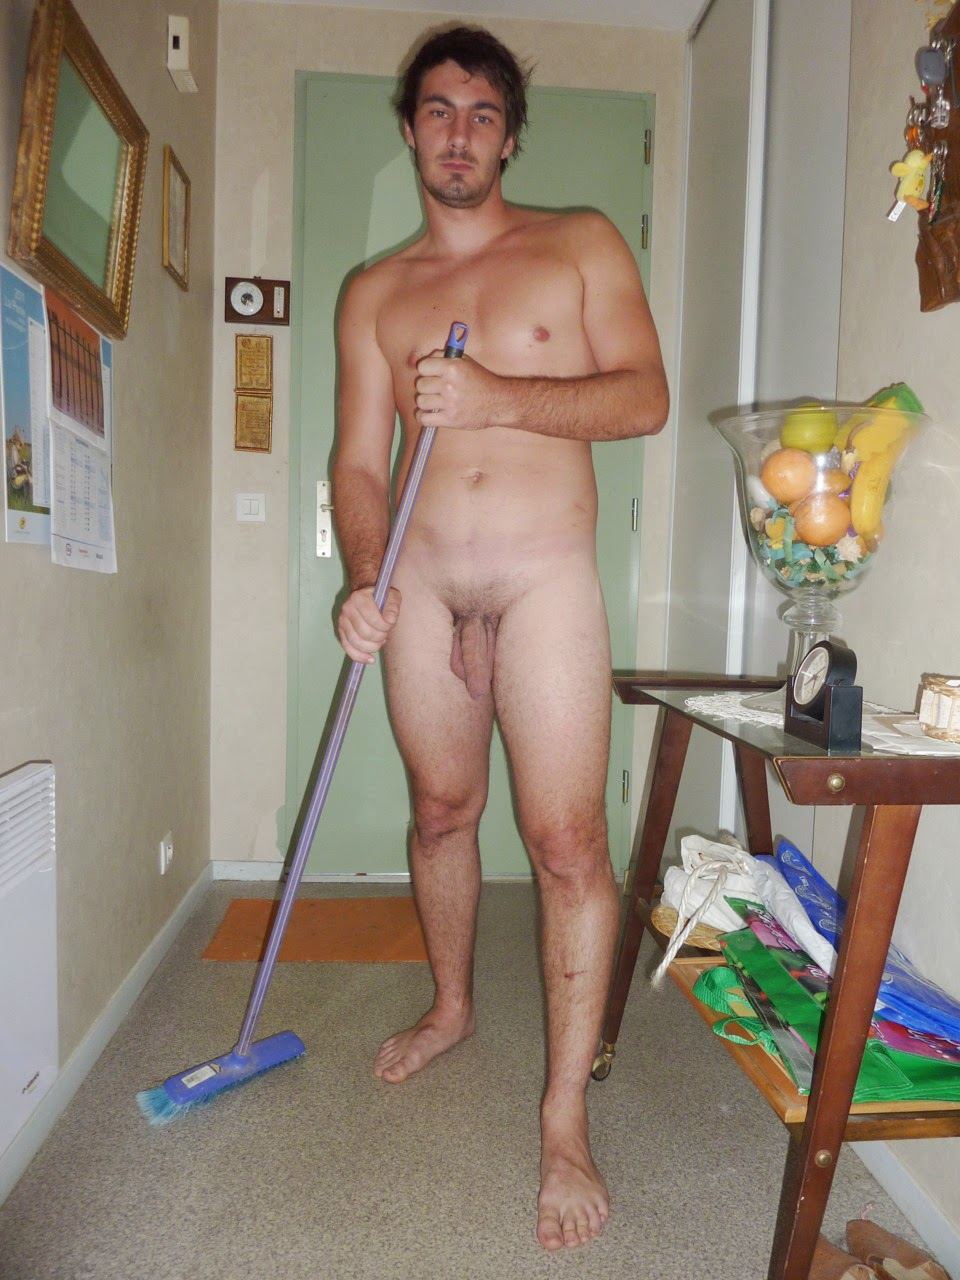 Would mature naked man images need